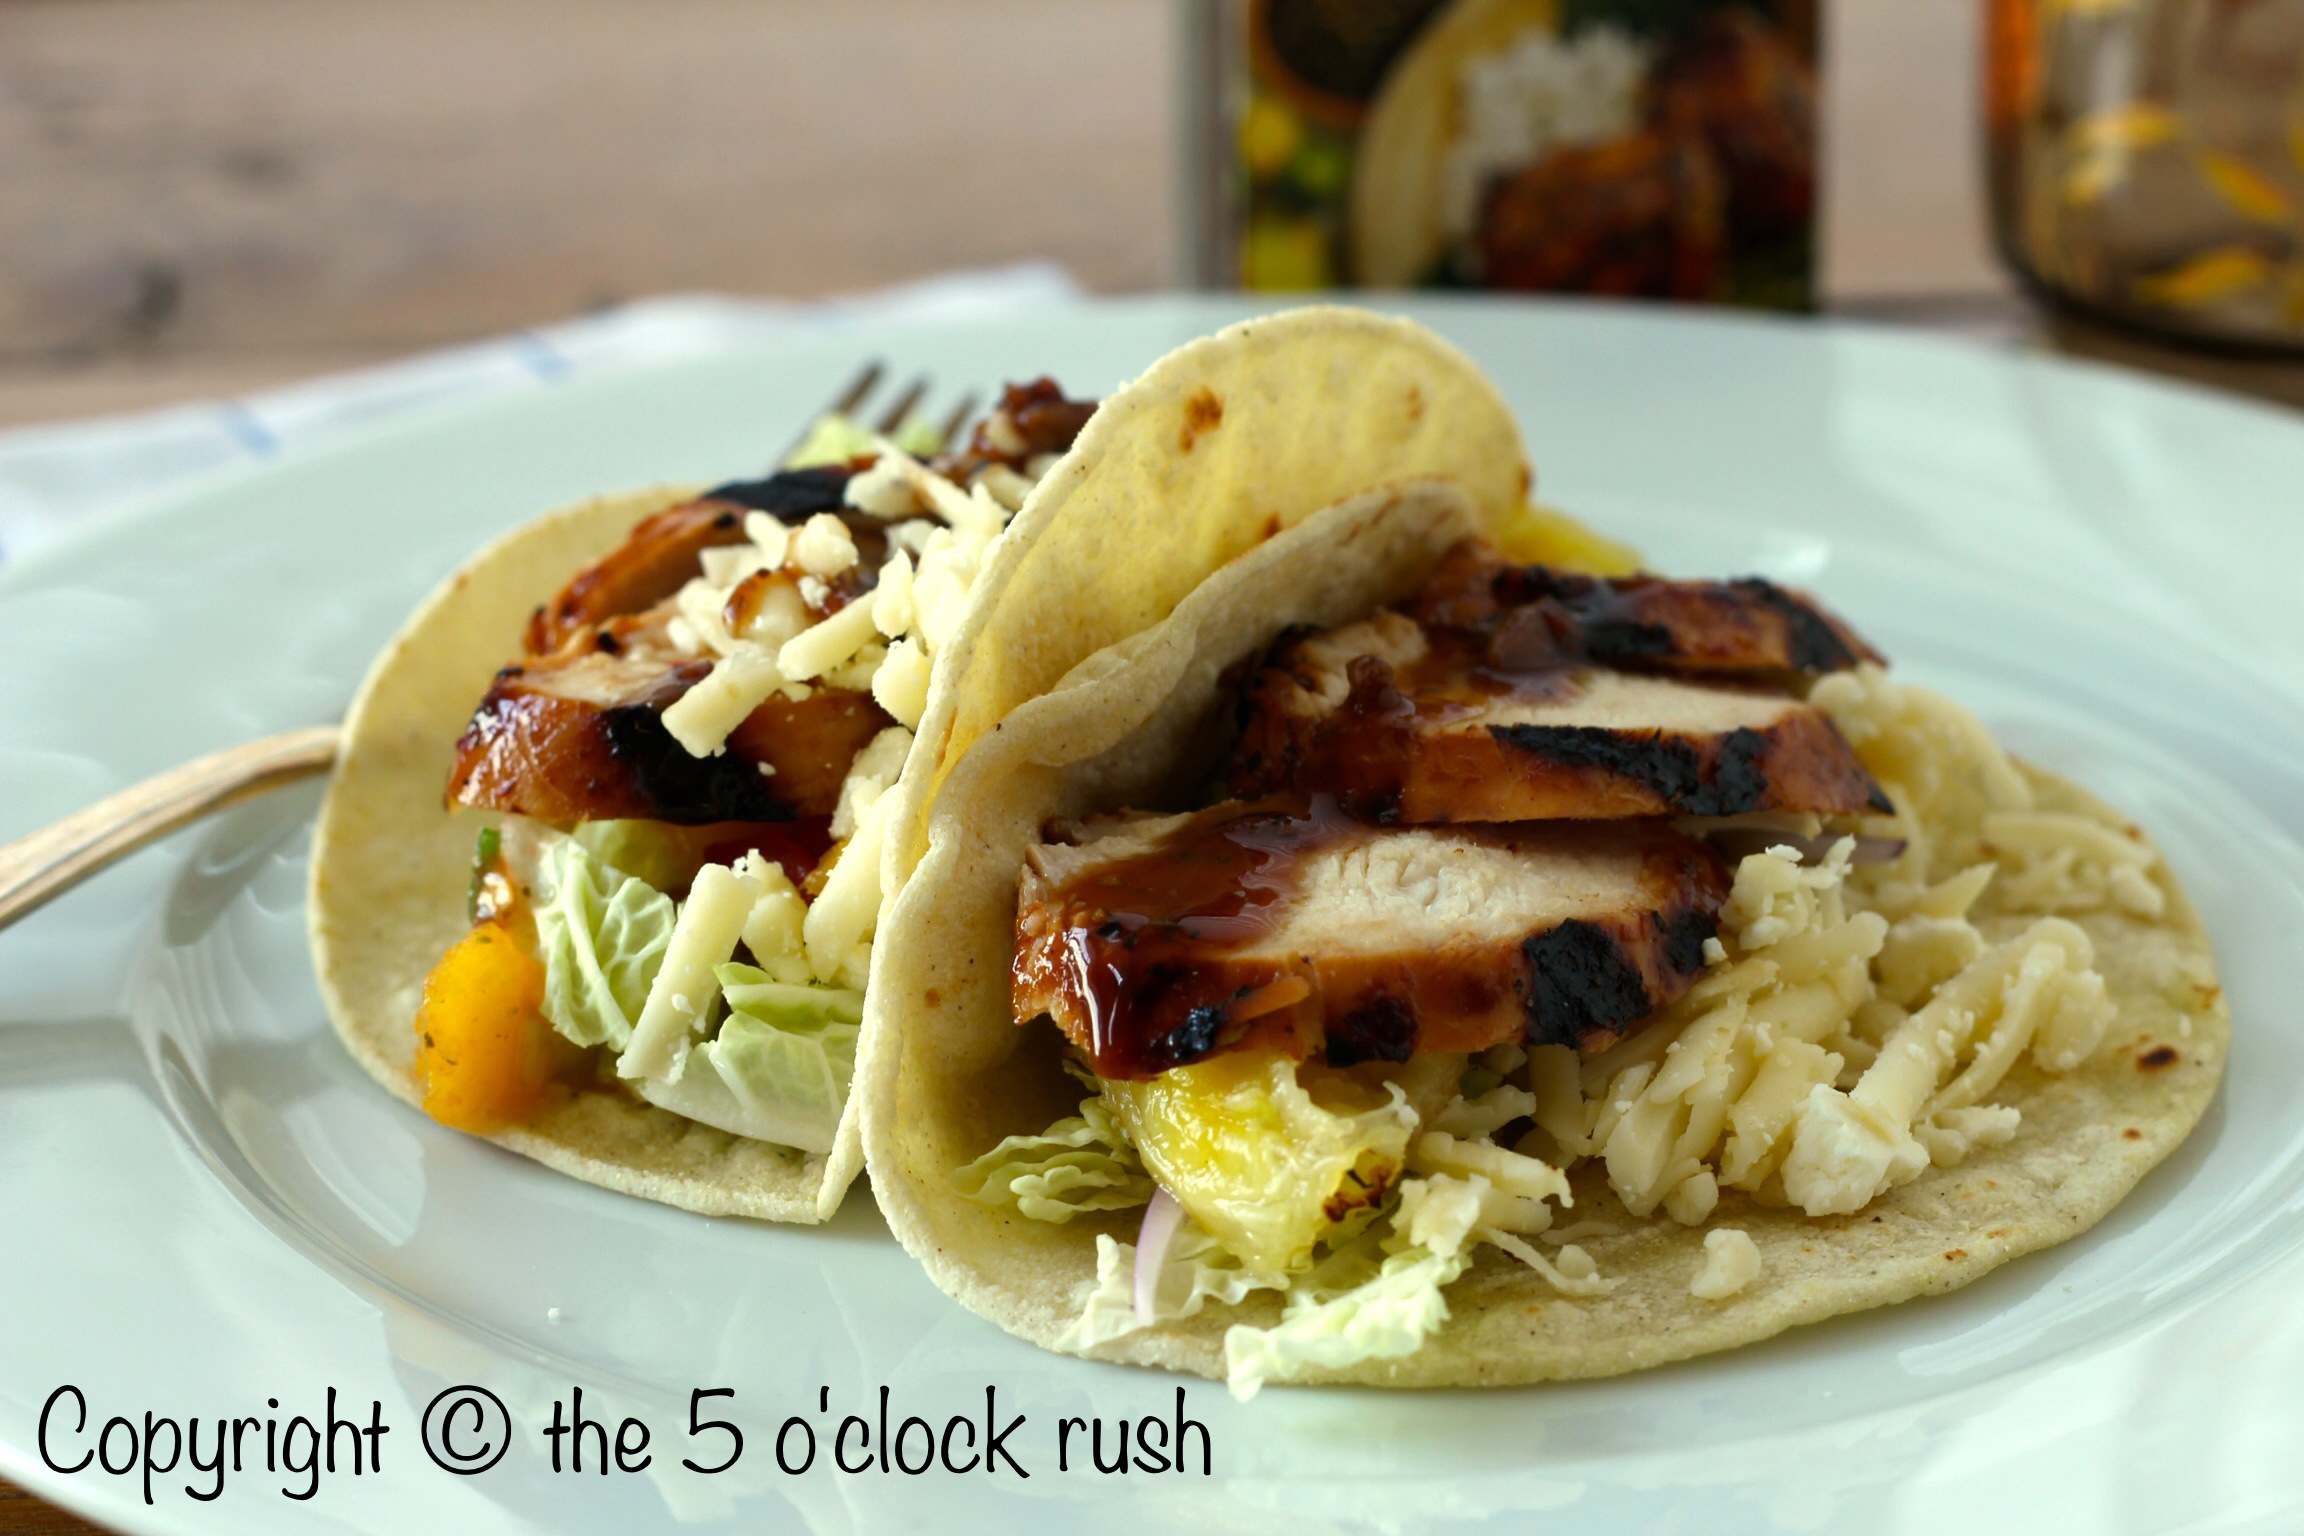 Pulo Cuisine' A Twist on Tacos | the 5 o'clock rush